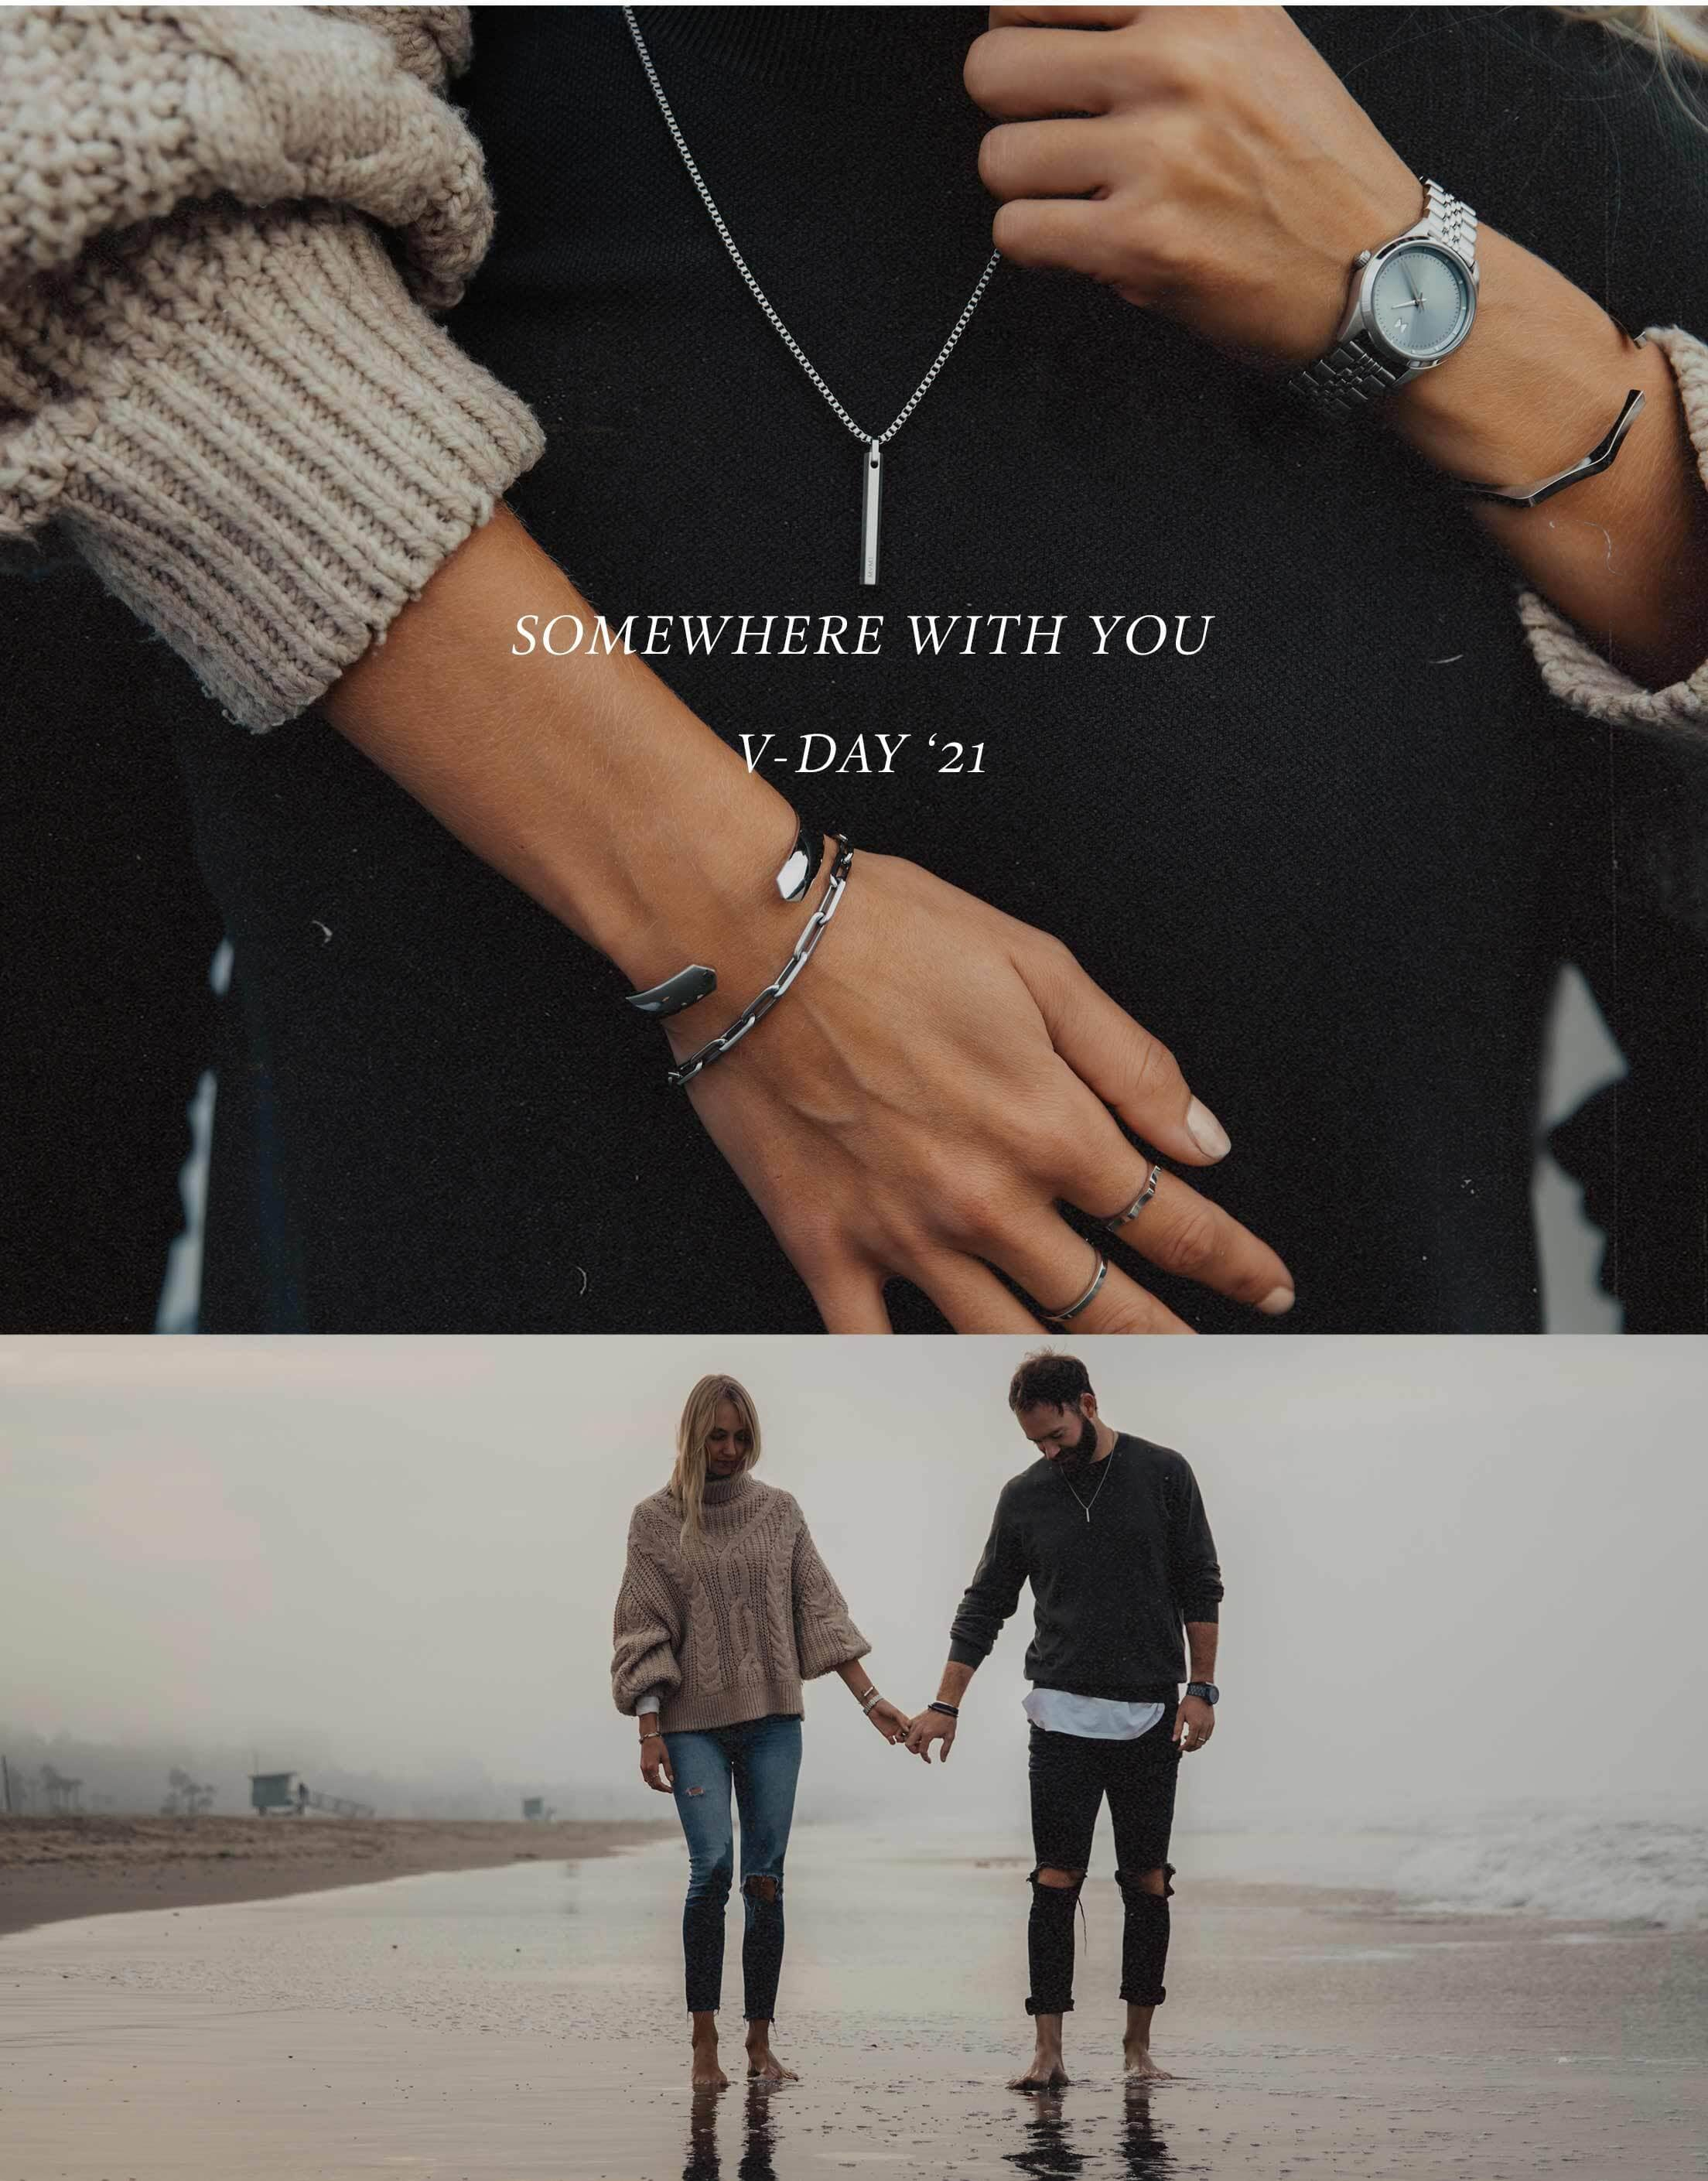 Somewhere with you. Vday '21